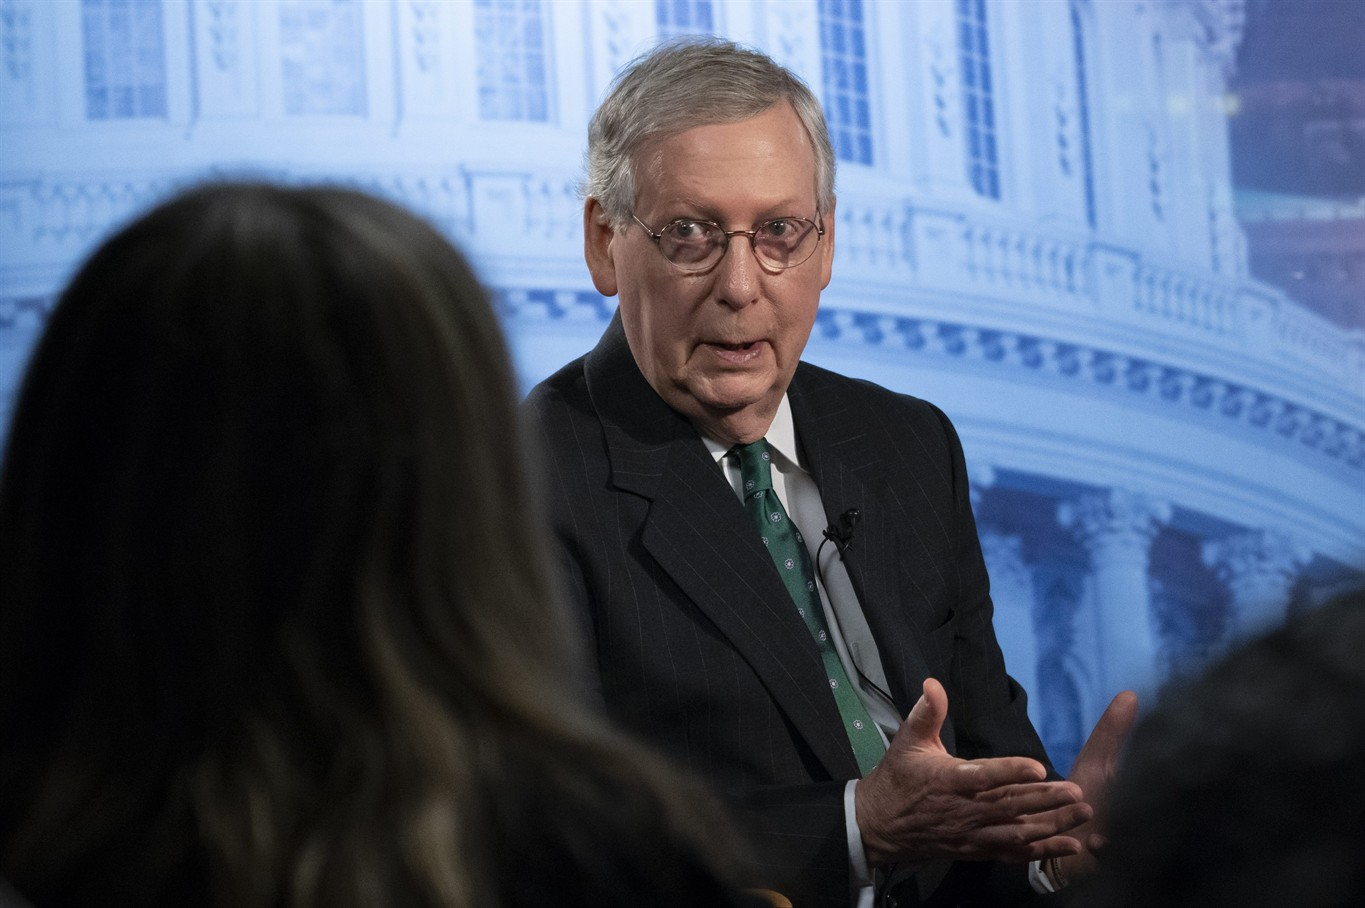 Discussion on this topic: Mitch McConnell: Nobodys going to beat Lisa , mitch-mcconnell-nobodys-going-to-beat-lisa/